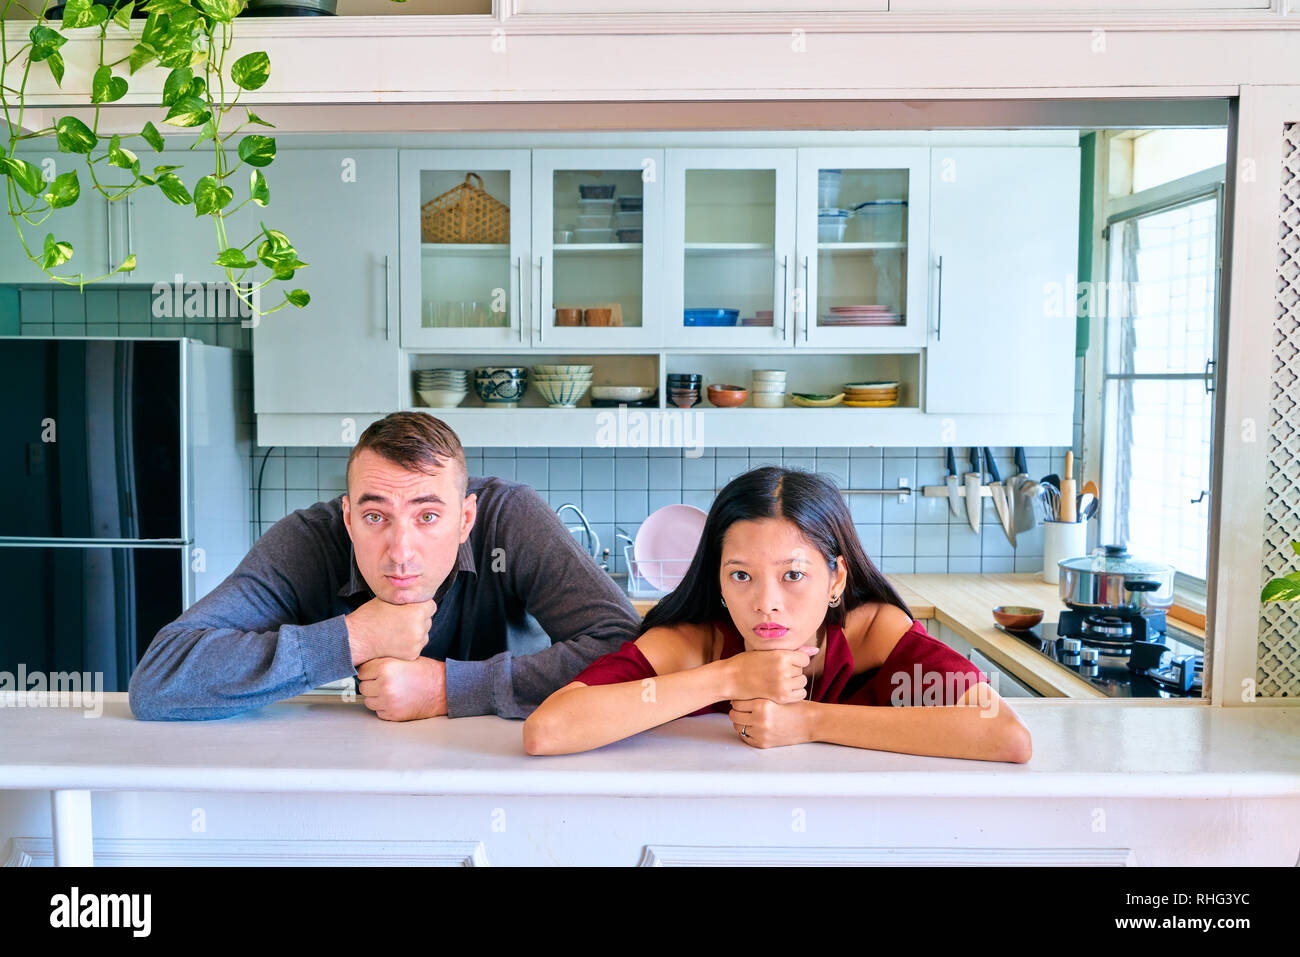 Lovely couple posing - fist on chin and looking at camera - Stock Image